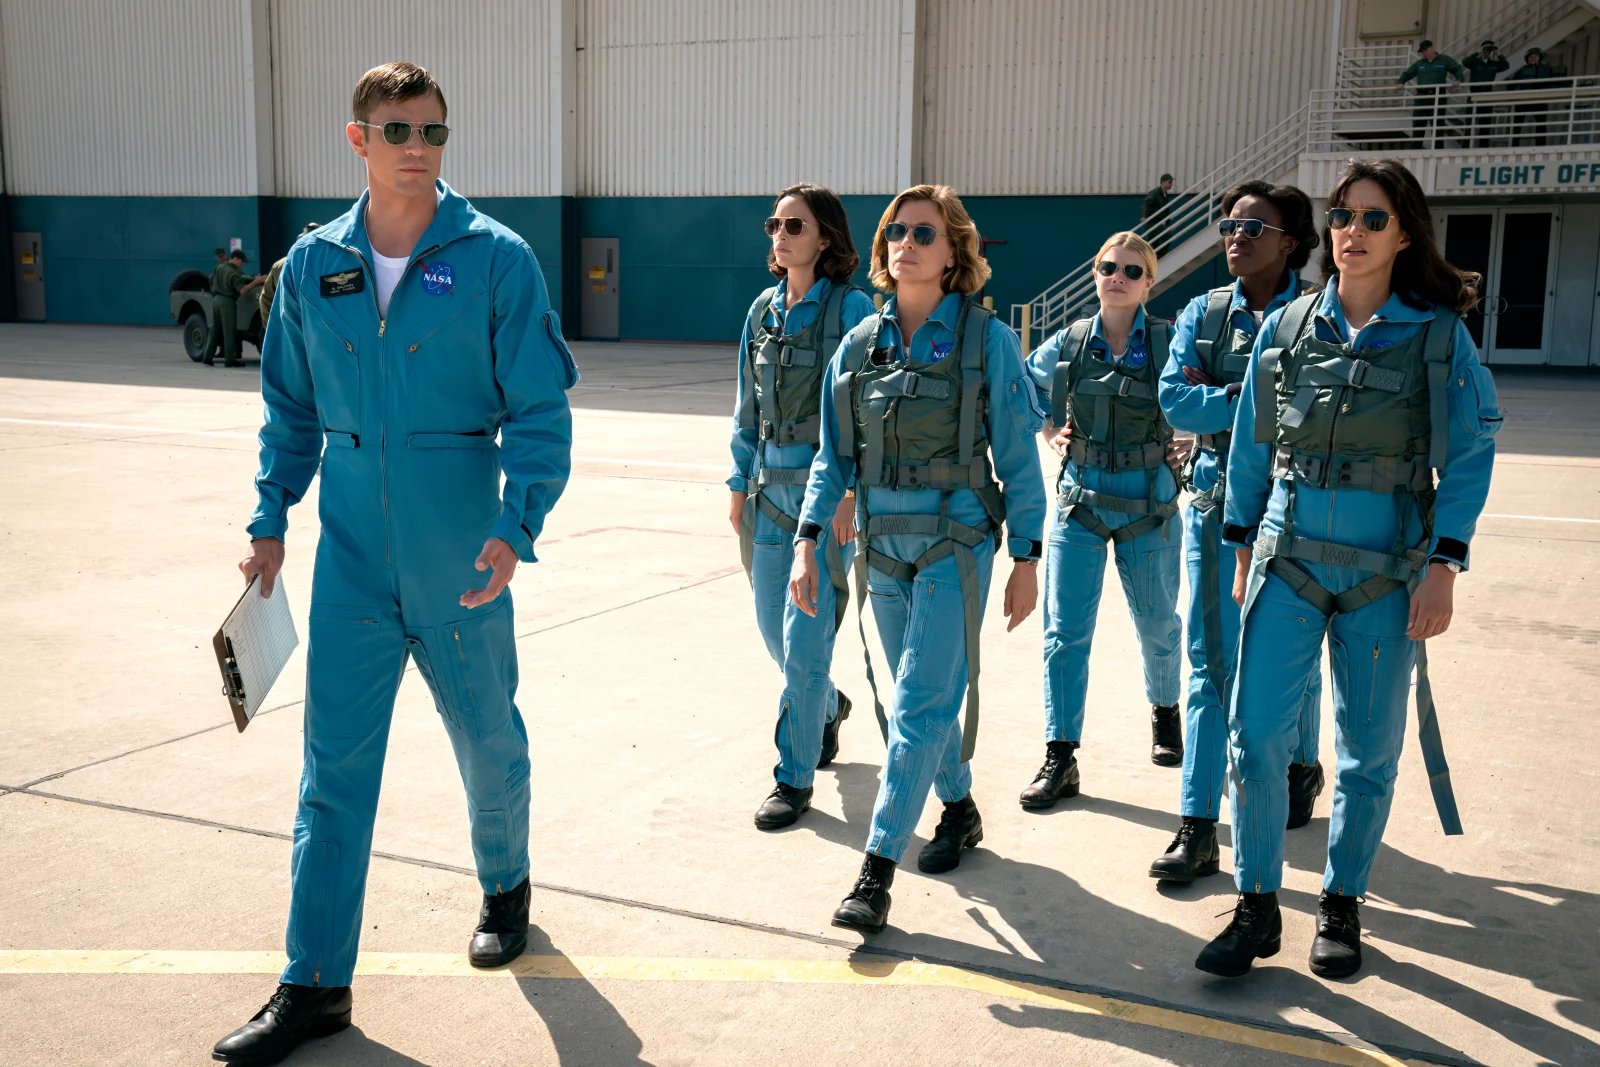 A male astronaut leads a cohort of female astronaut candidates onto the airfield. All wear aviators and have period-inappropriate hair.